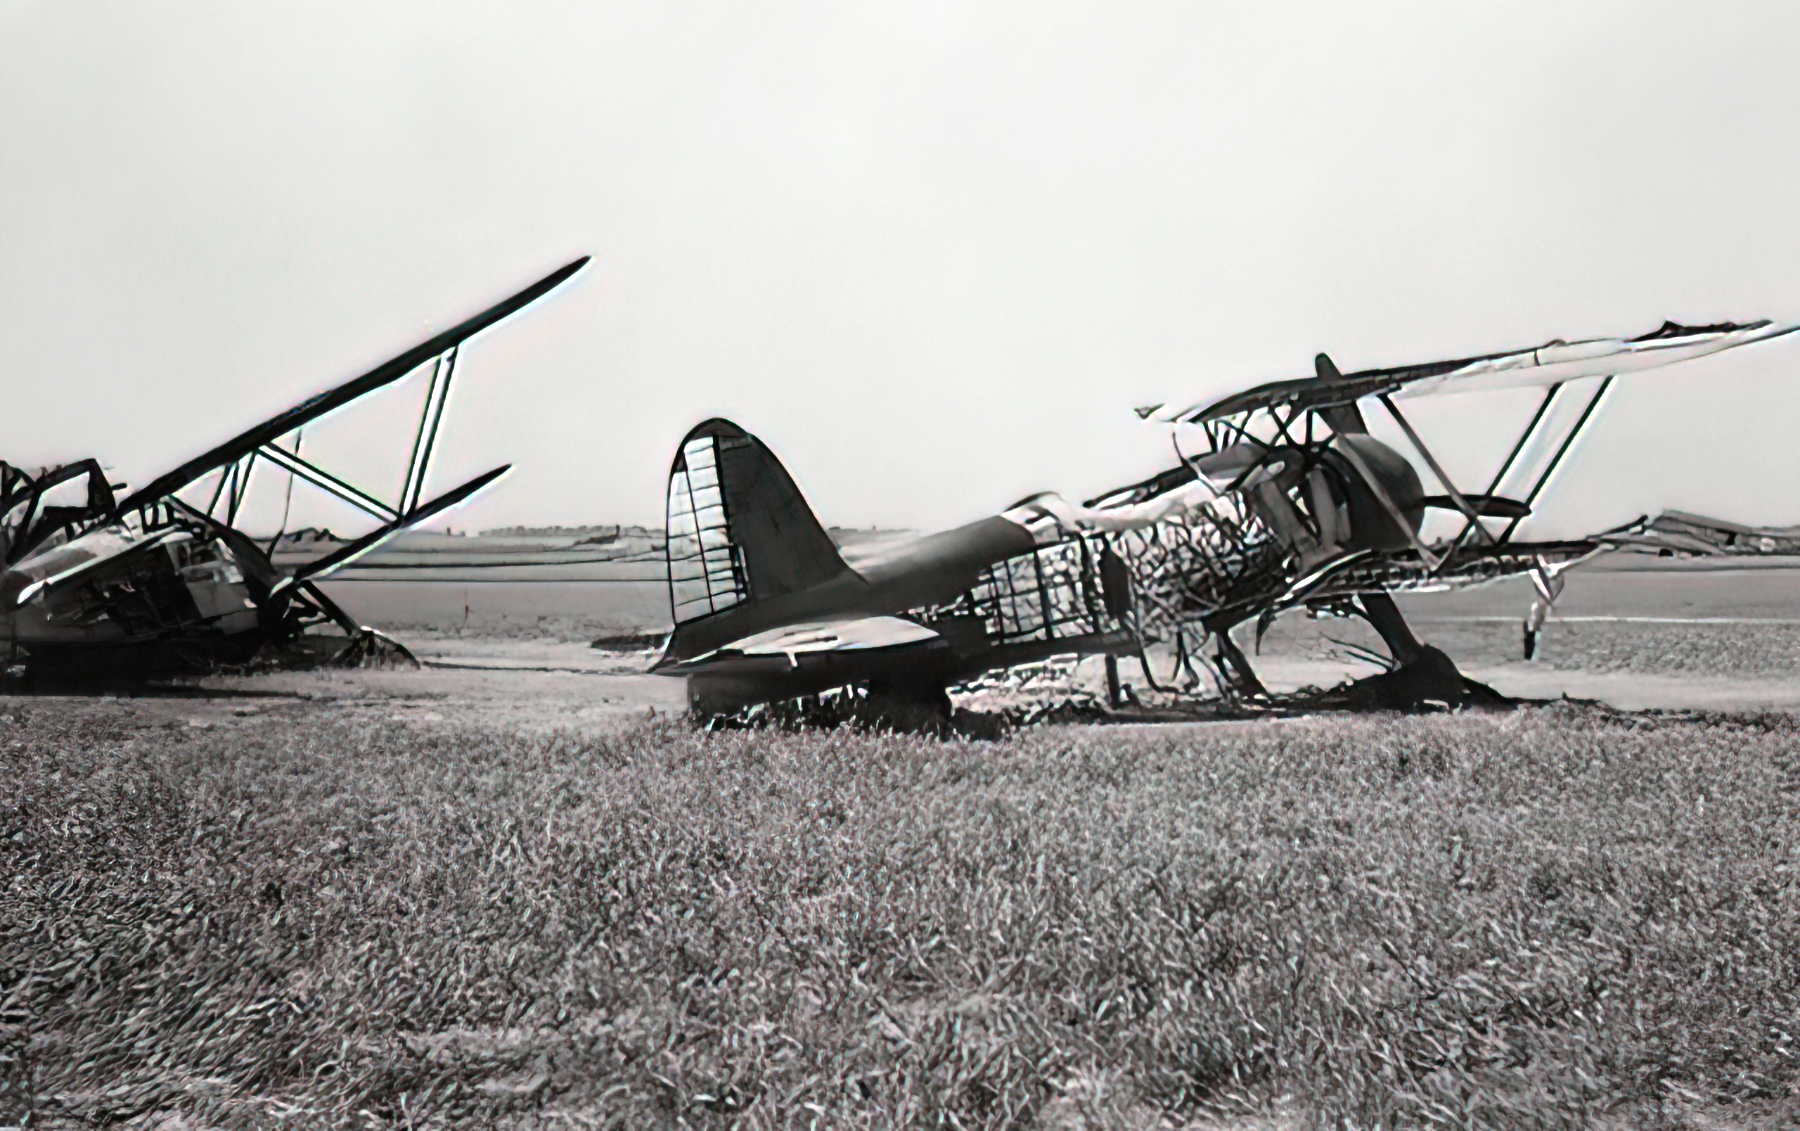 Fiat CR 42 Falco BAF IIFG3FS White 3 destroyed by strafing Belgium 1940 02